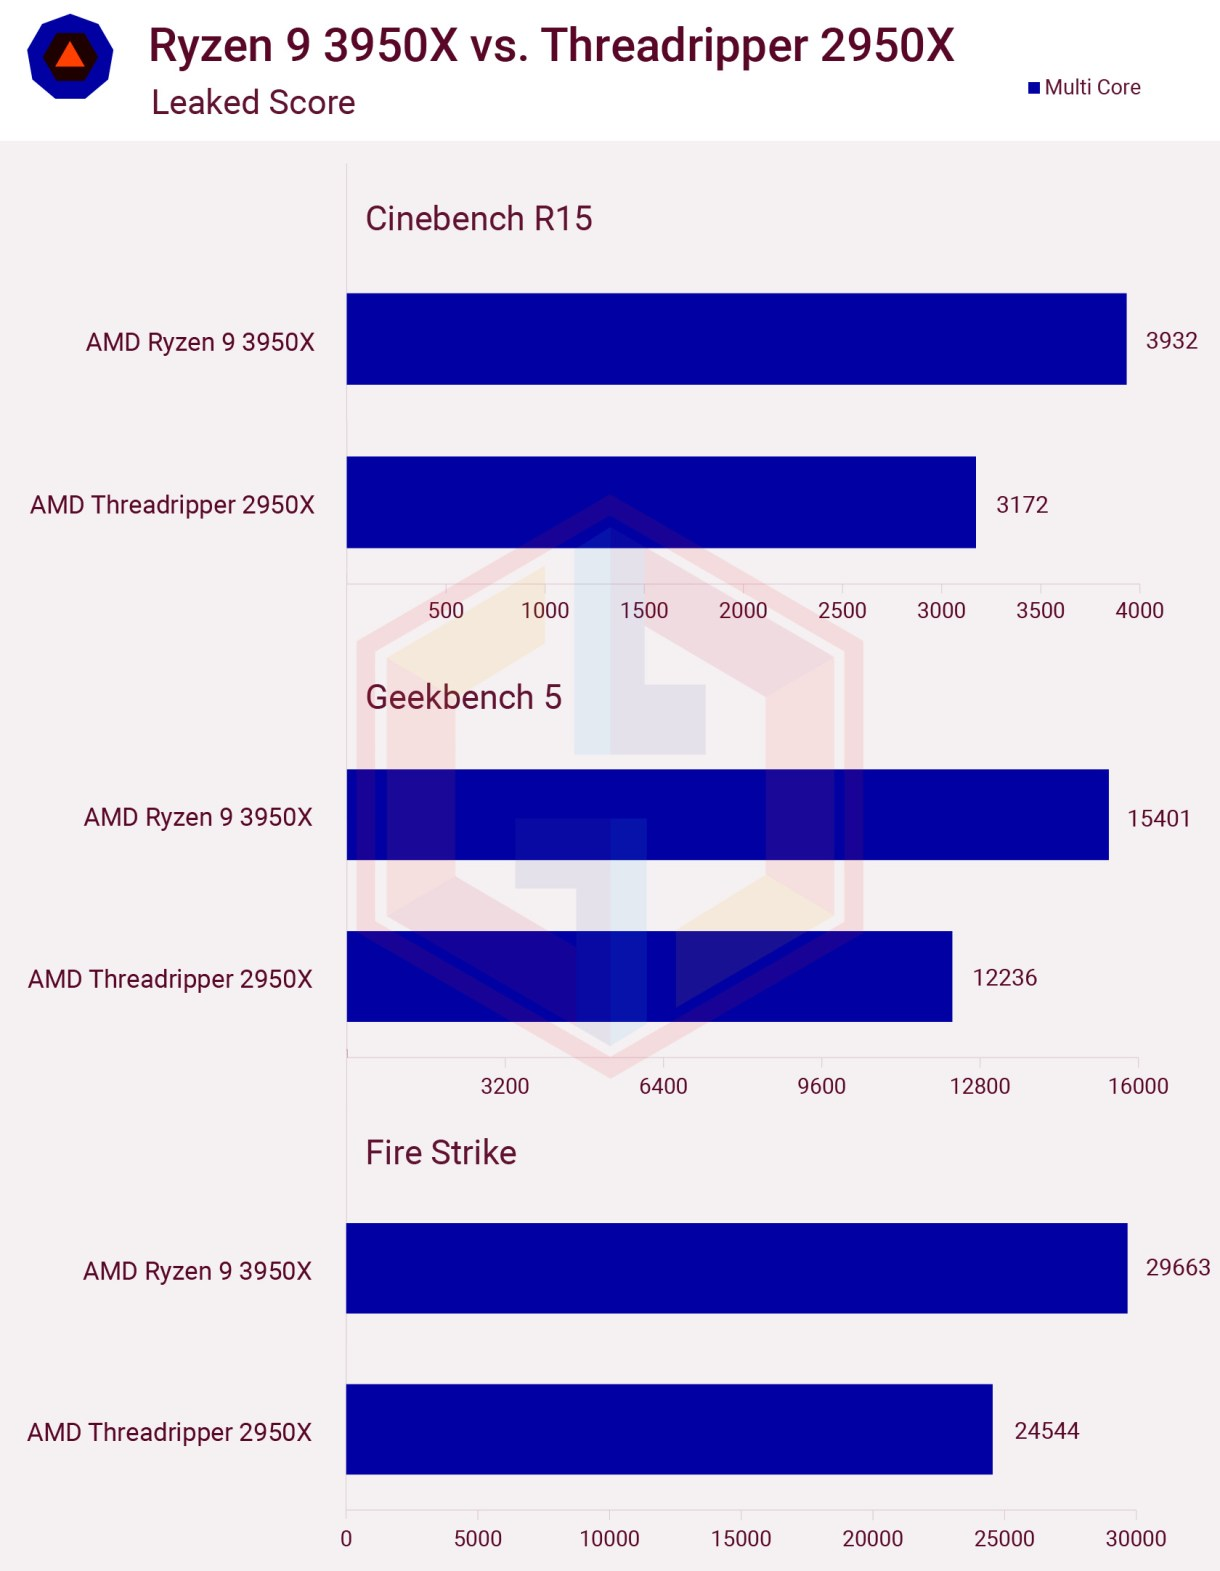 Ryzen 9 3950X vs Threadripper 2950X Score Leaked